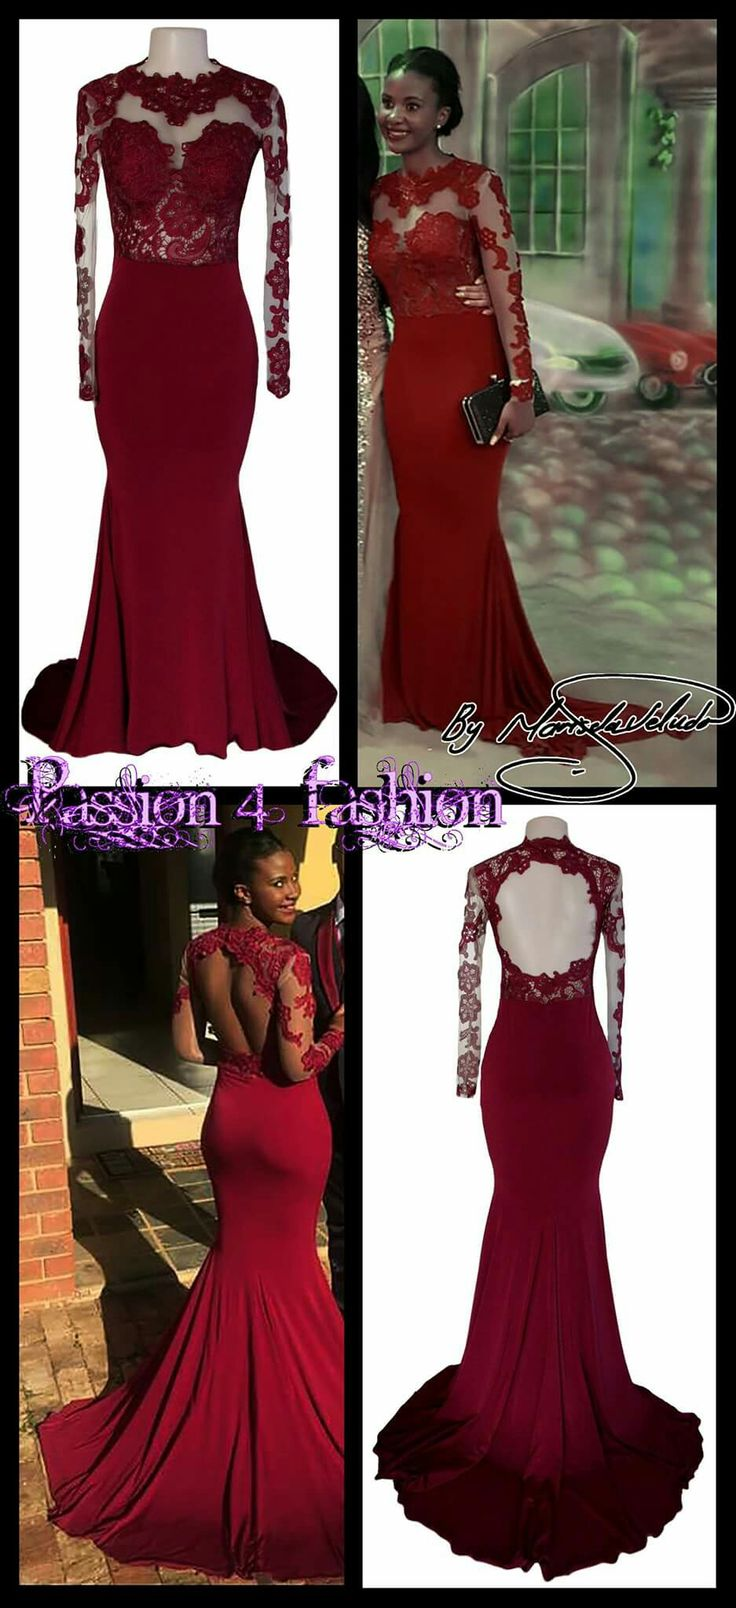 Deep Red Maroon Lace Bodice Soft Mermaid Dress With A Rounded Open Back Long Sheer Sleeves And